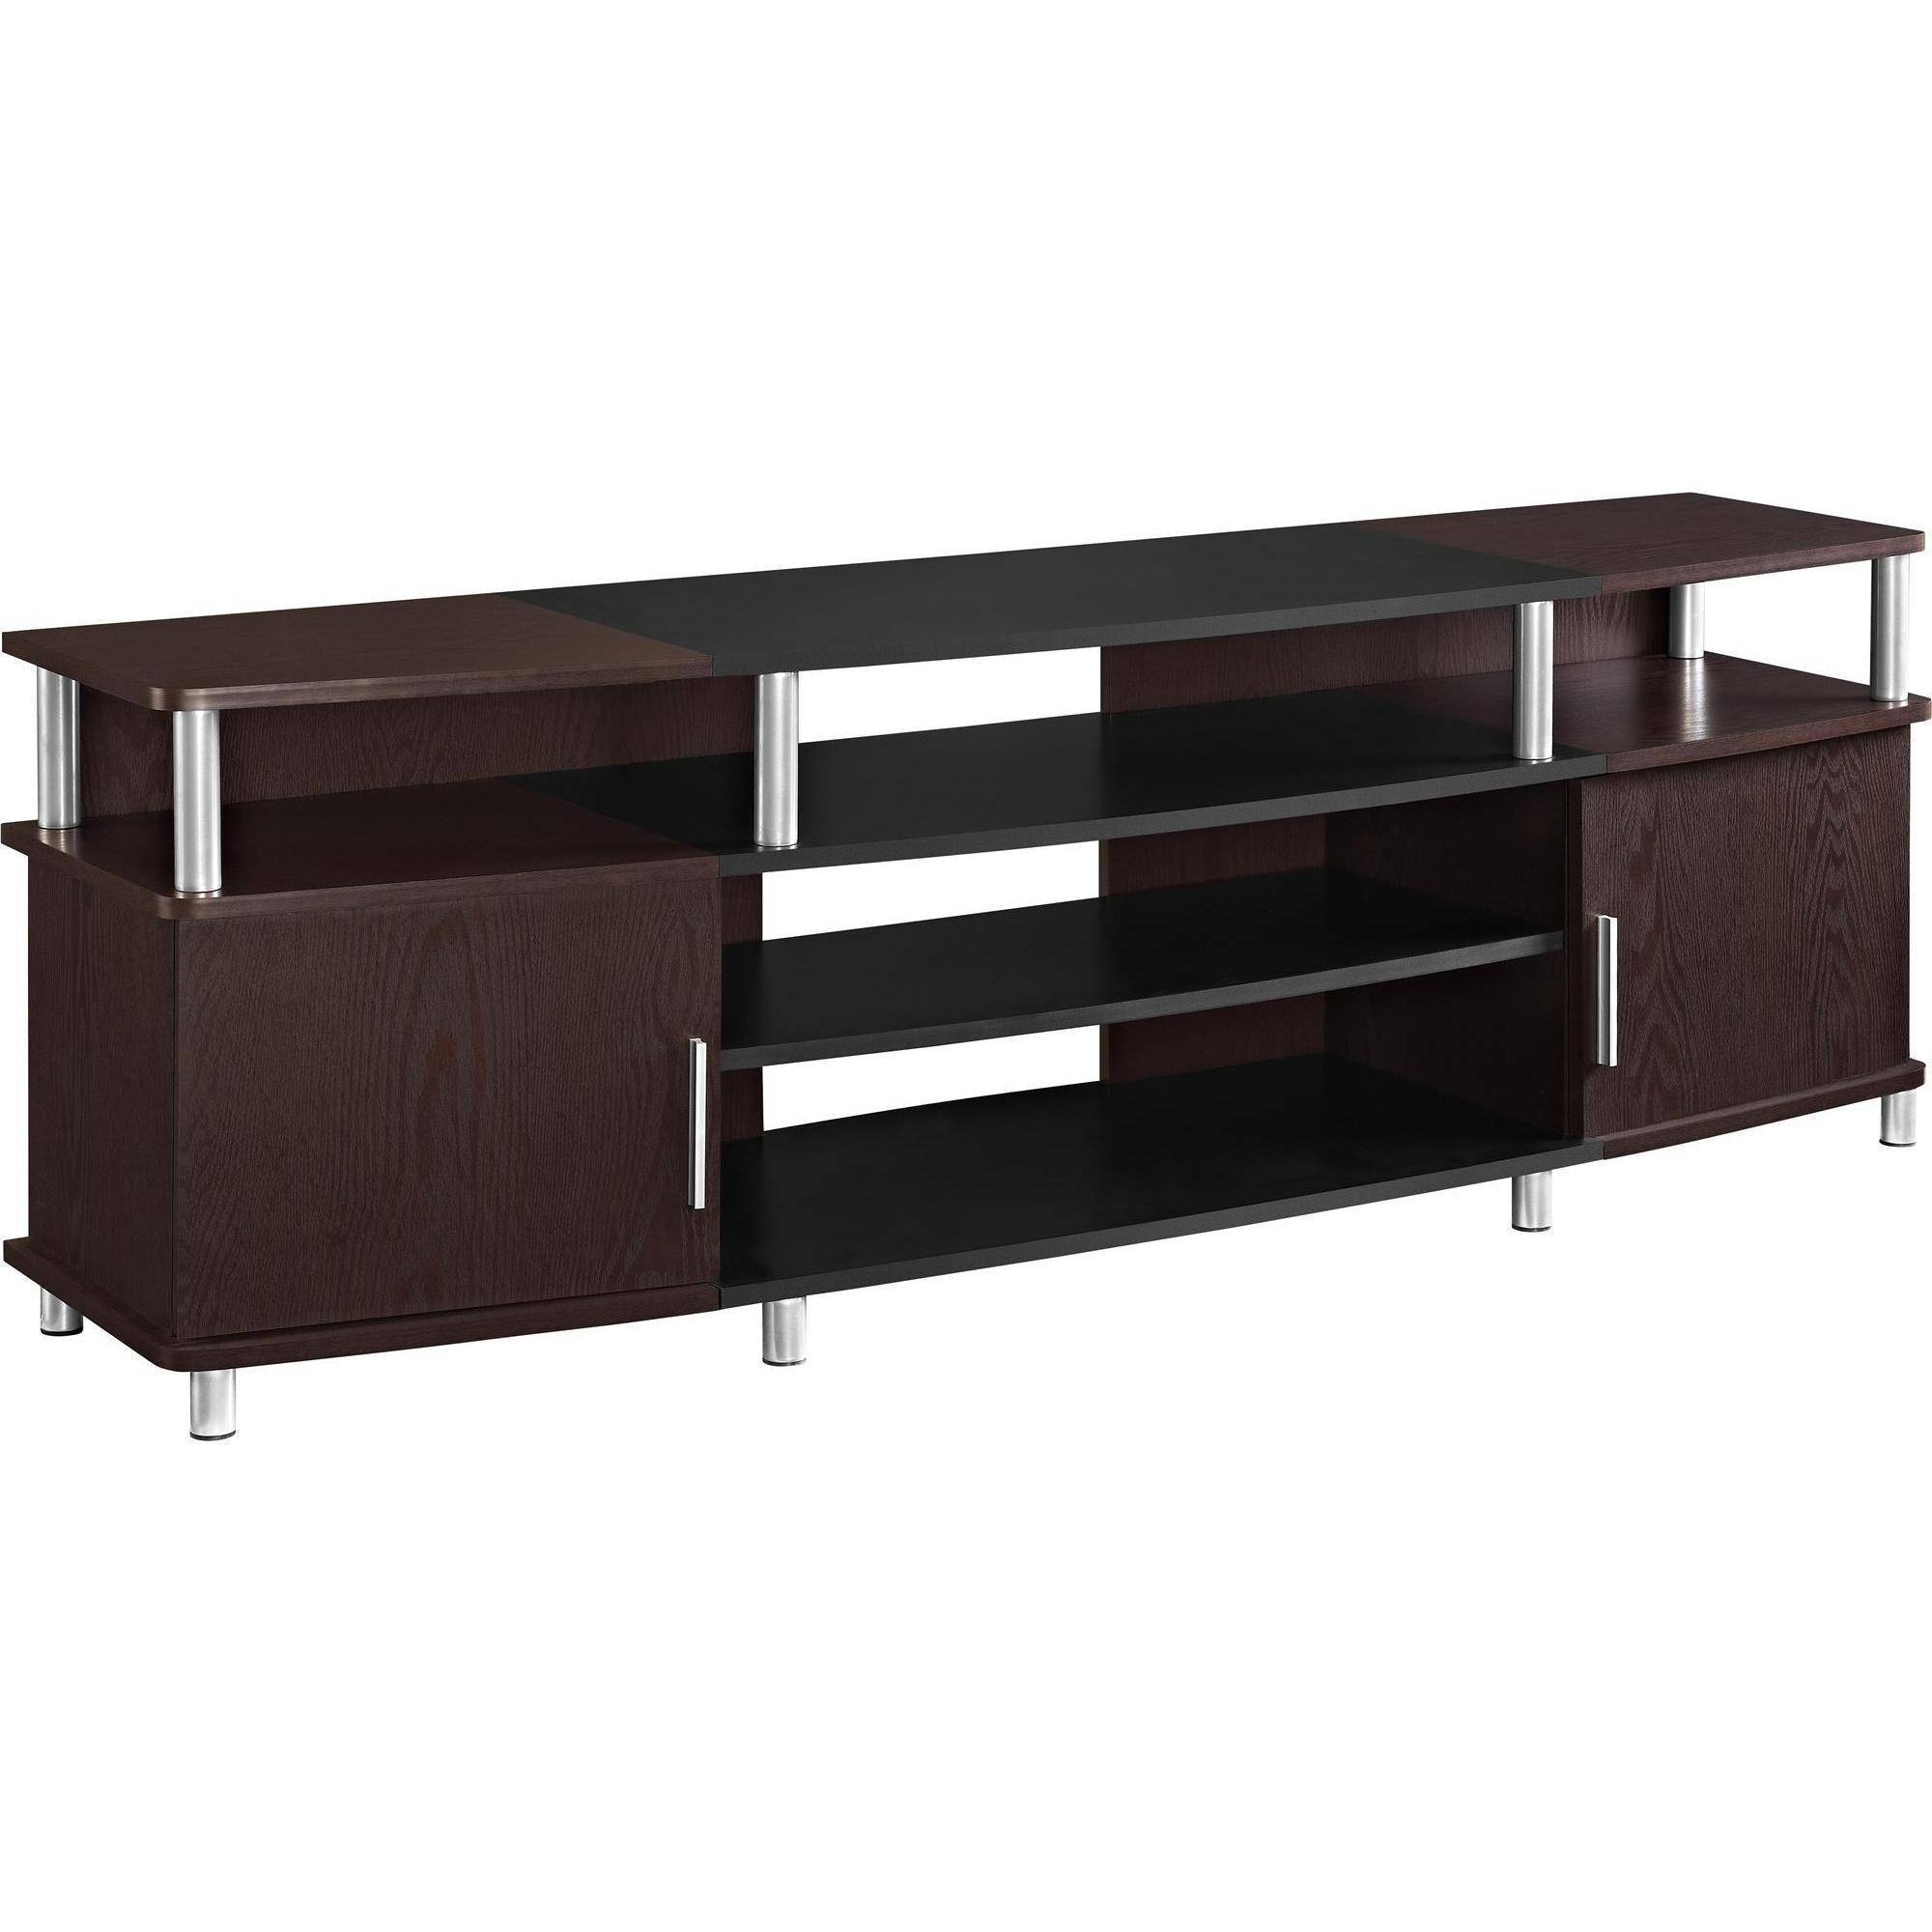 Tv Stand For 70 Inch Tv in Tv Stands for 70 Inch Tvs (Image 11 of 15)